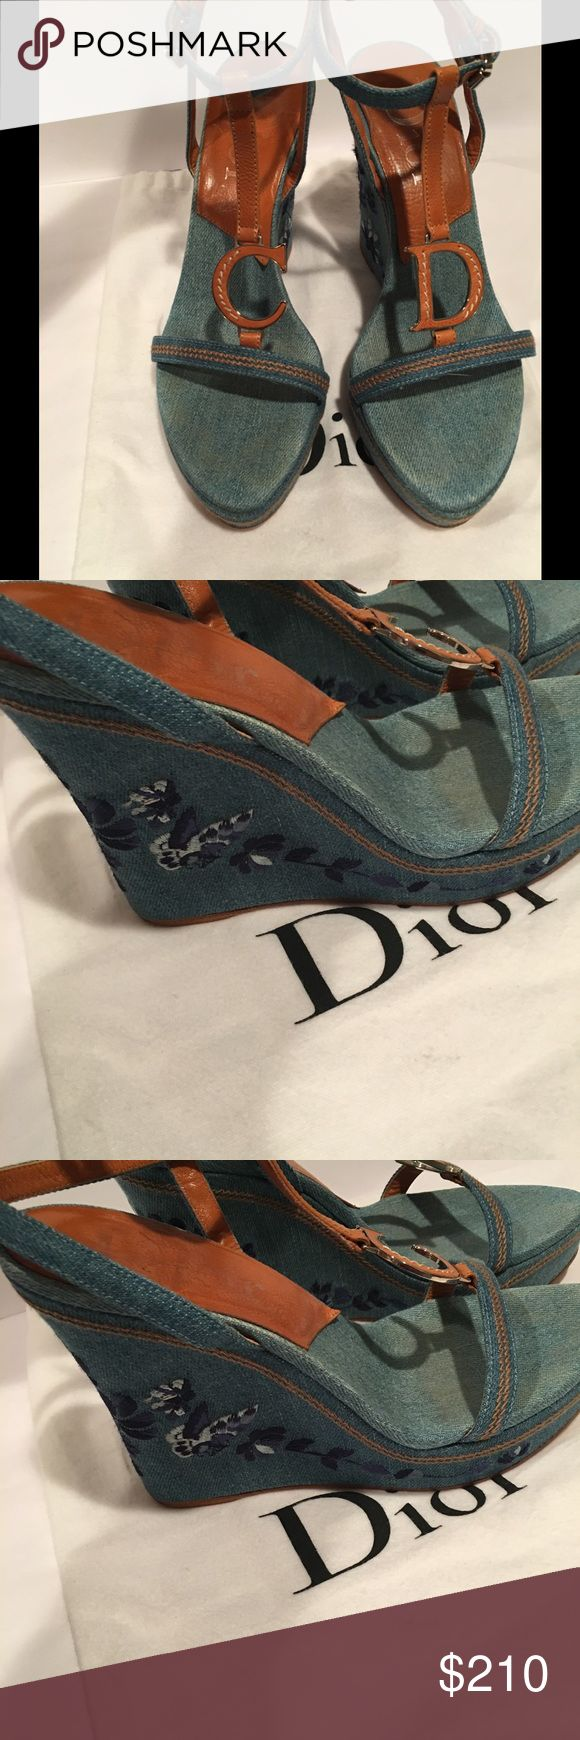 """Christian Dior Denim & Tan Embroidered Wedge 39.5 💯authentic Christian DIOR Denim and Leather Trim Embroidered 5"""" high Wedge. This show wraps around your ankles and has the classic C and D letters on each shoe ! Open toe ! size 39.5 , beautiful embroidery on wedge heel . Perfect when worn with dresses, skirts and even Jeans !! Super cute !! Christian Dior Shoes Wedges"""